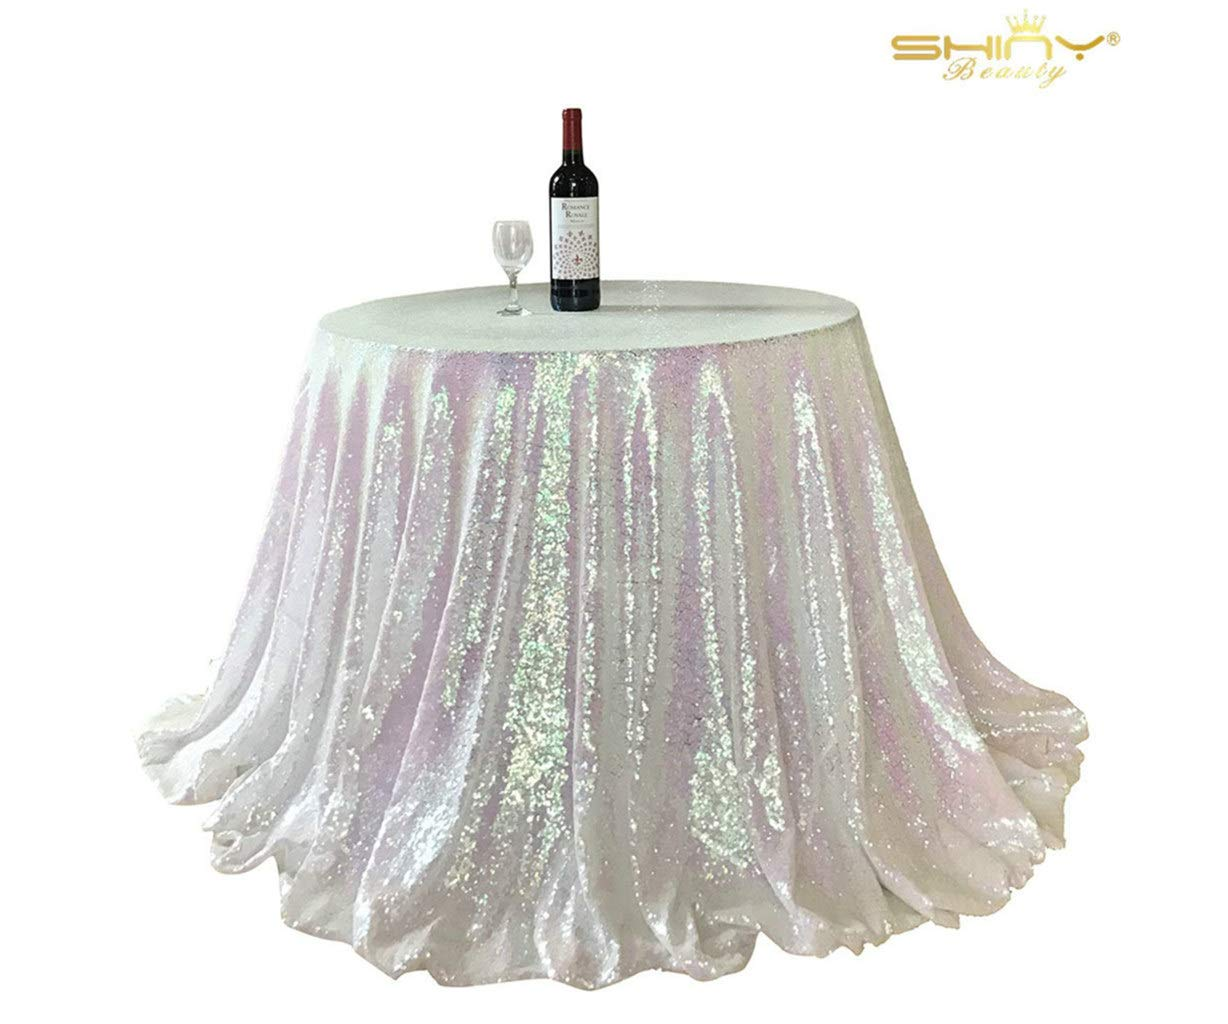 ShinyBeautyスパンコールテーブルクロス- 60inchラウンドSparkleテーブルクロスキラキラテーブルクロス、スパンコール、結婚テーブルクロス 60Inch round Sequin Tablecloth 60 Changed White 8-14 B06XSGBGXS  Changed White